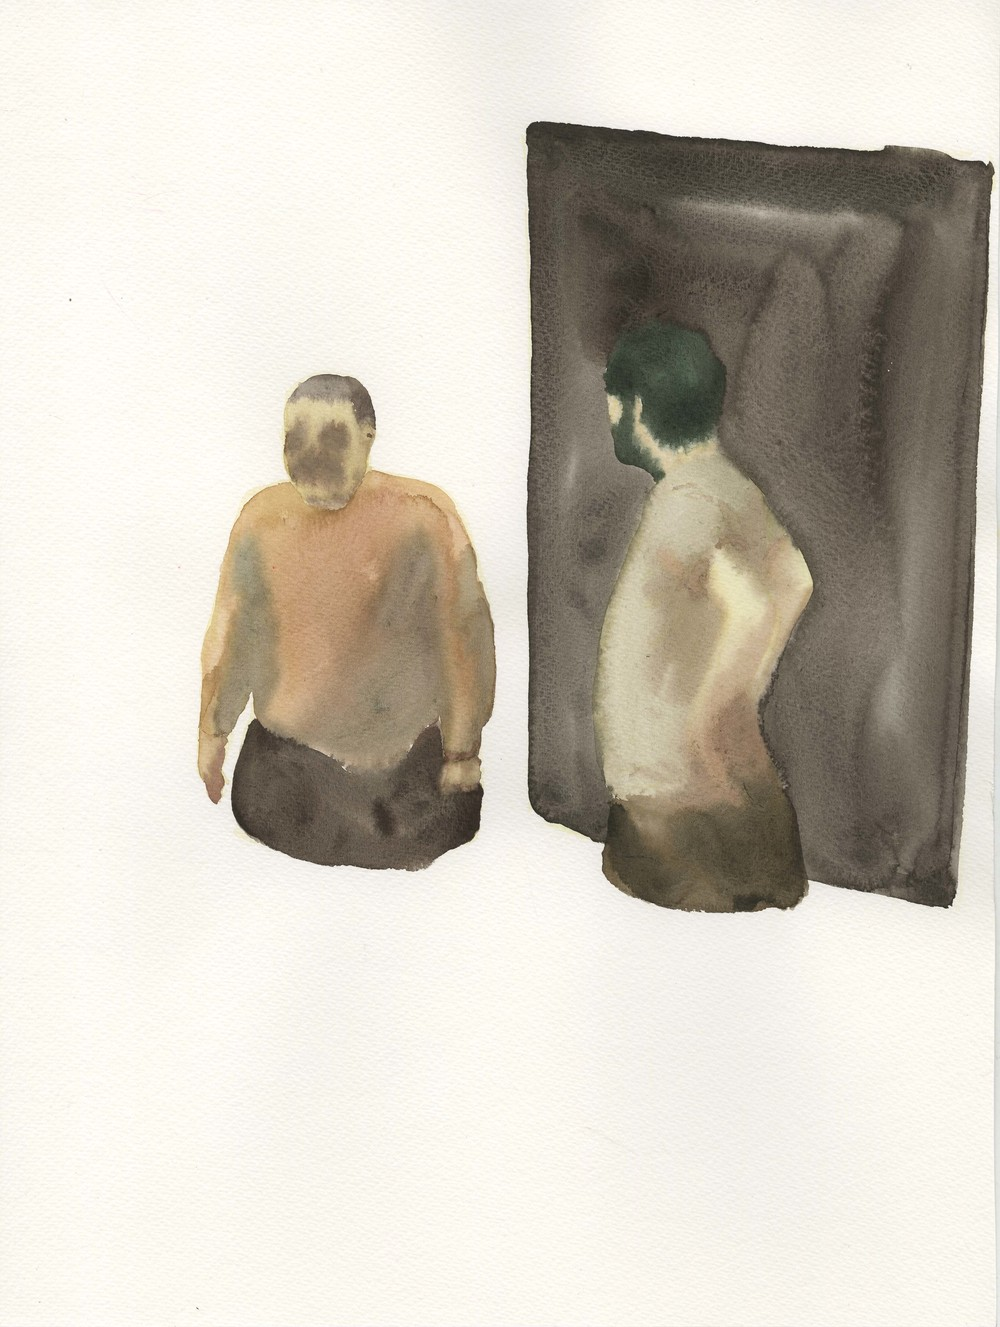 """One Just Stand There Staring Blankly, When Another Just Pass By…"", 2014, Watercolor on Paper纸上水彩 16.1 x 12 in. (40.6 x 30.5 cm)"